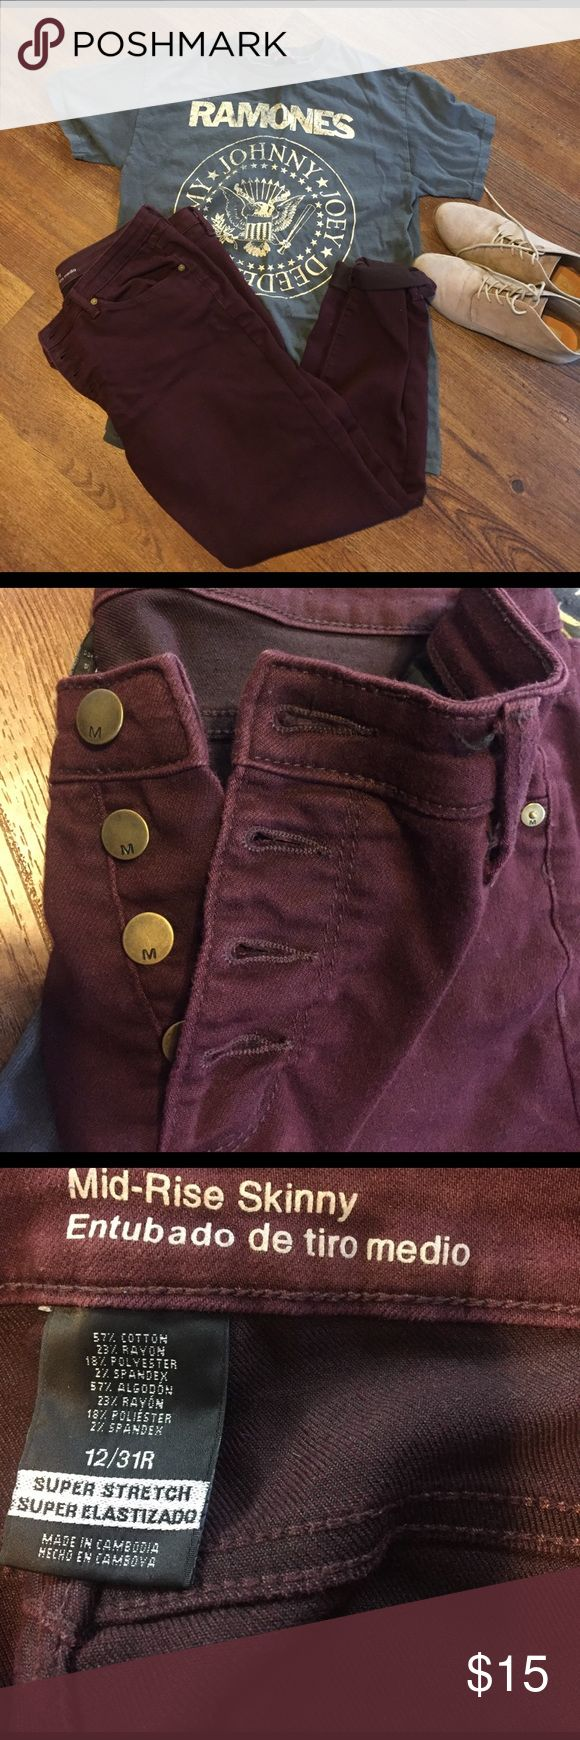 Maroon skinny jeans Maroon mid-rise skinny jeans with button fly. Slight pilling in the crotch area but it's very high up and not noticeable. Size 12/31R Mossimo Supply Co. Jeans Skinny